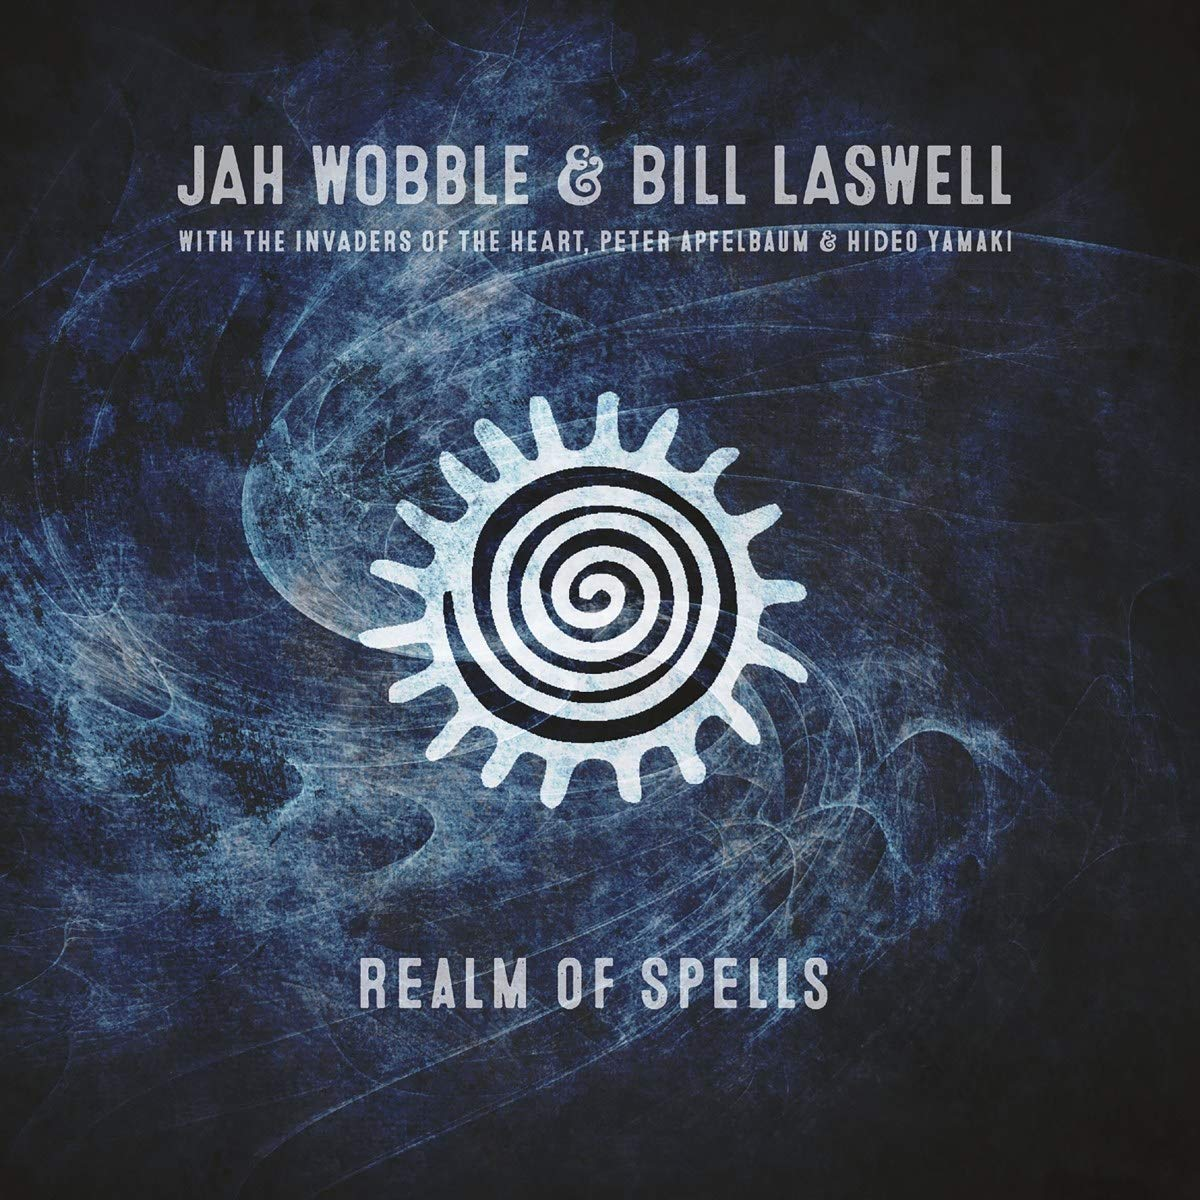 Jah Wobble & Bill Laswell - Realm Of Spells (2019) [FLAC] Download